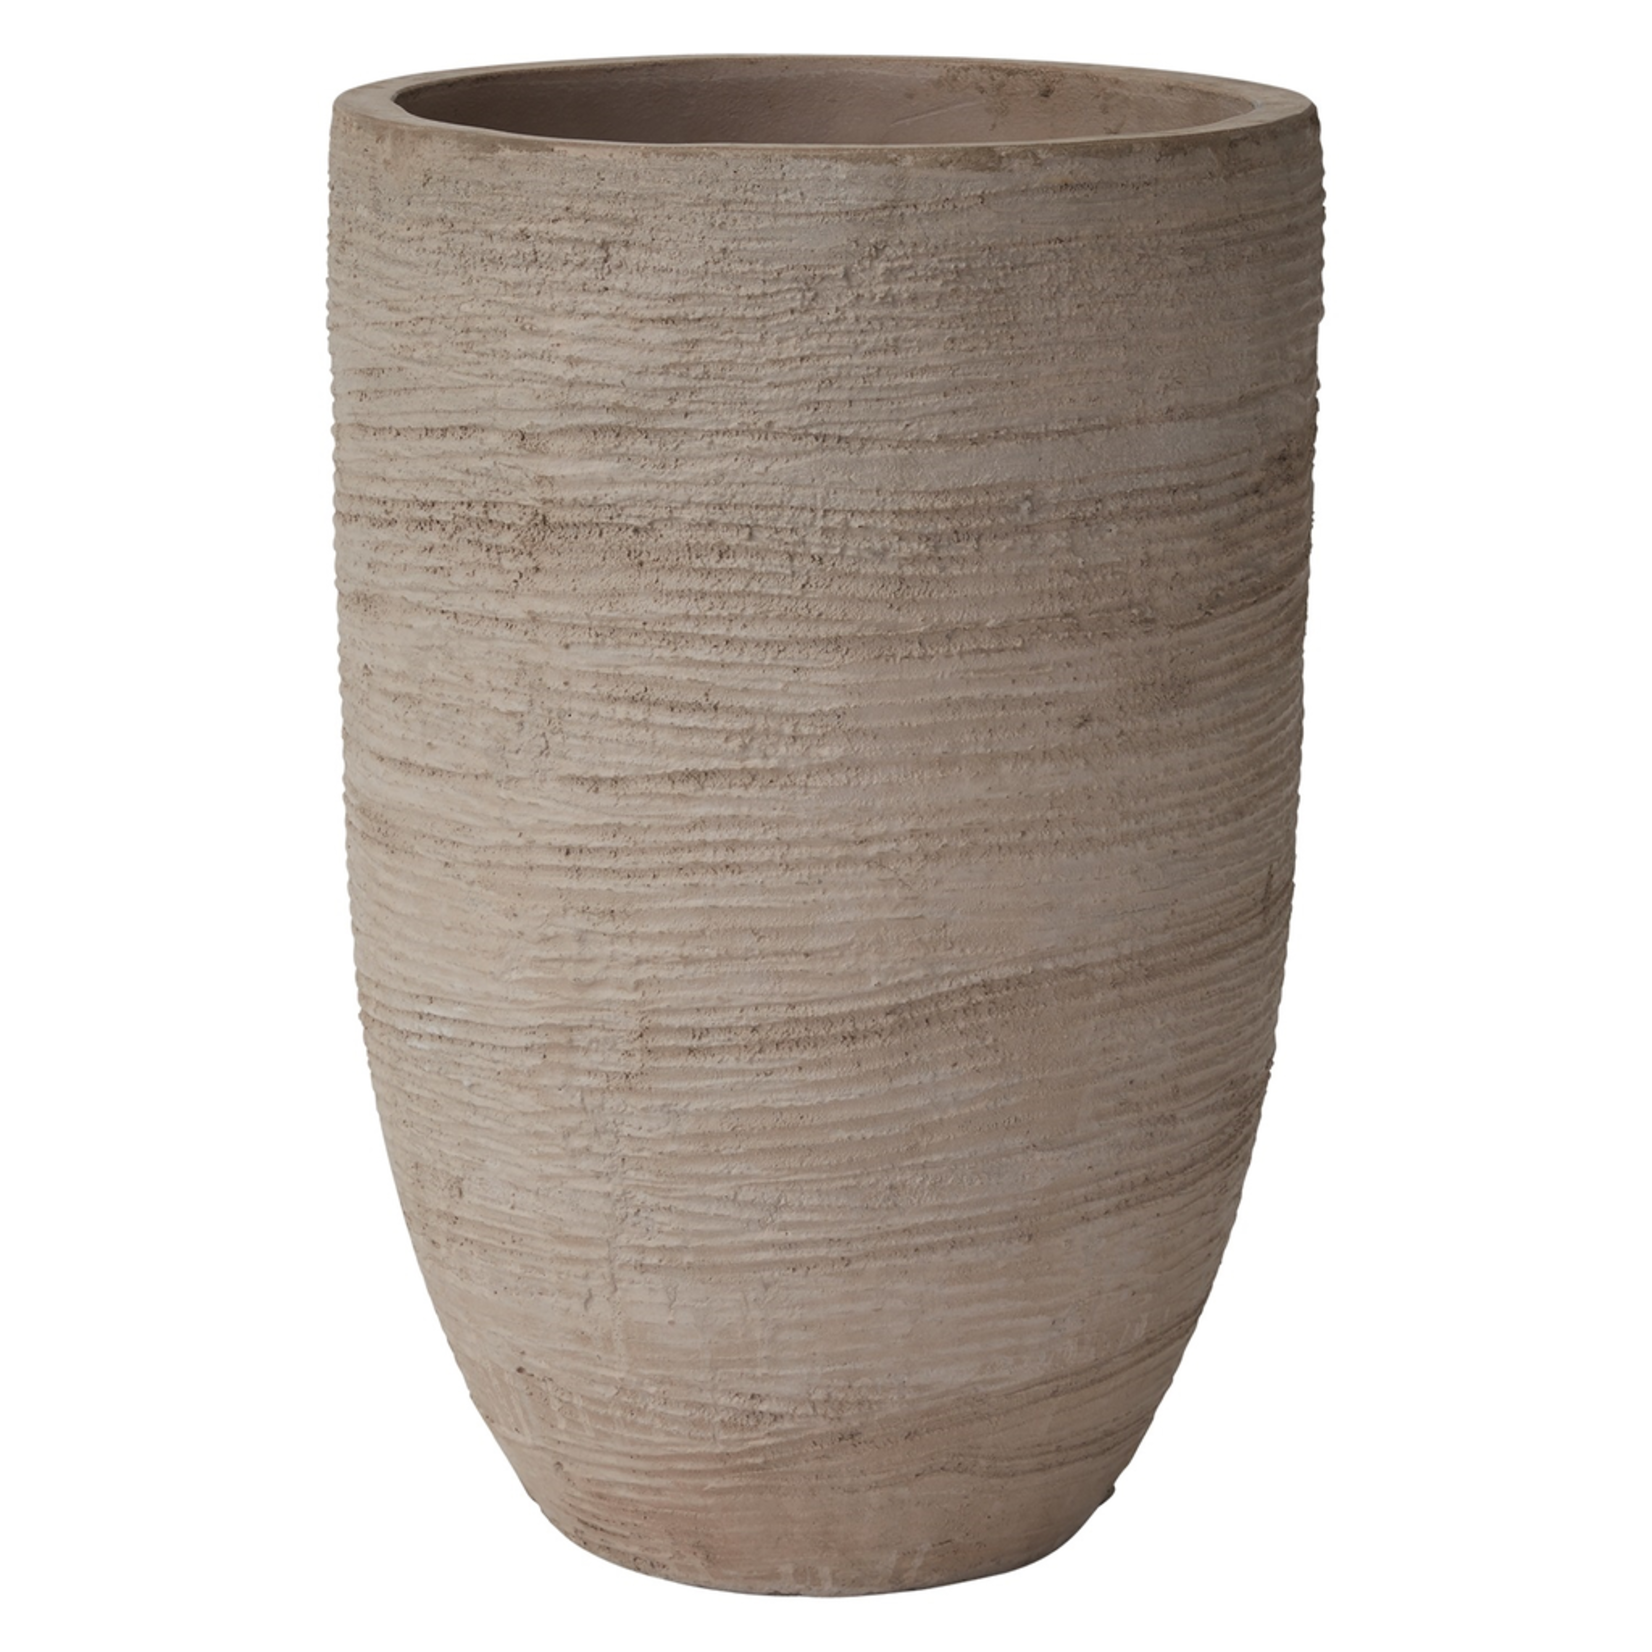 """17.5""""x 26.5""""H MURPHY PLANTER COLLECTION (AD)"""